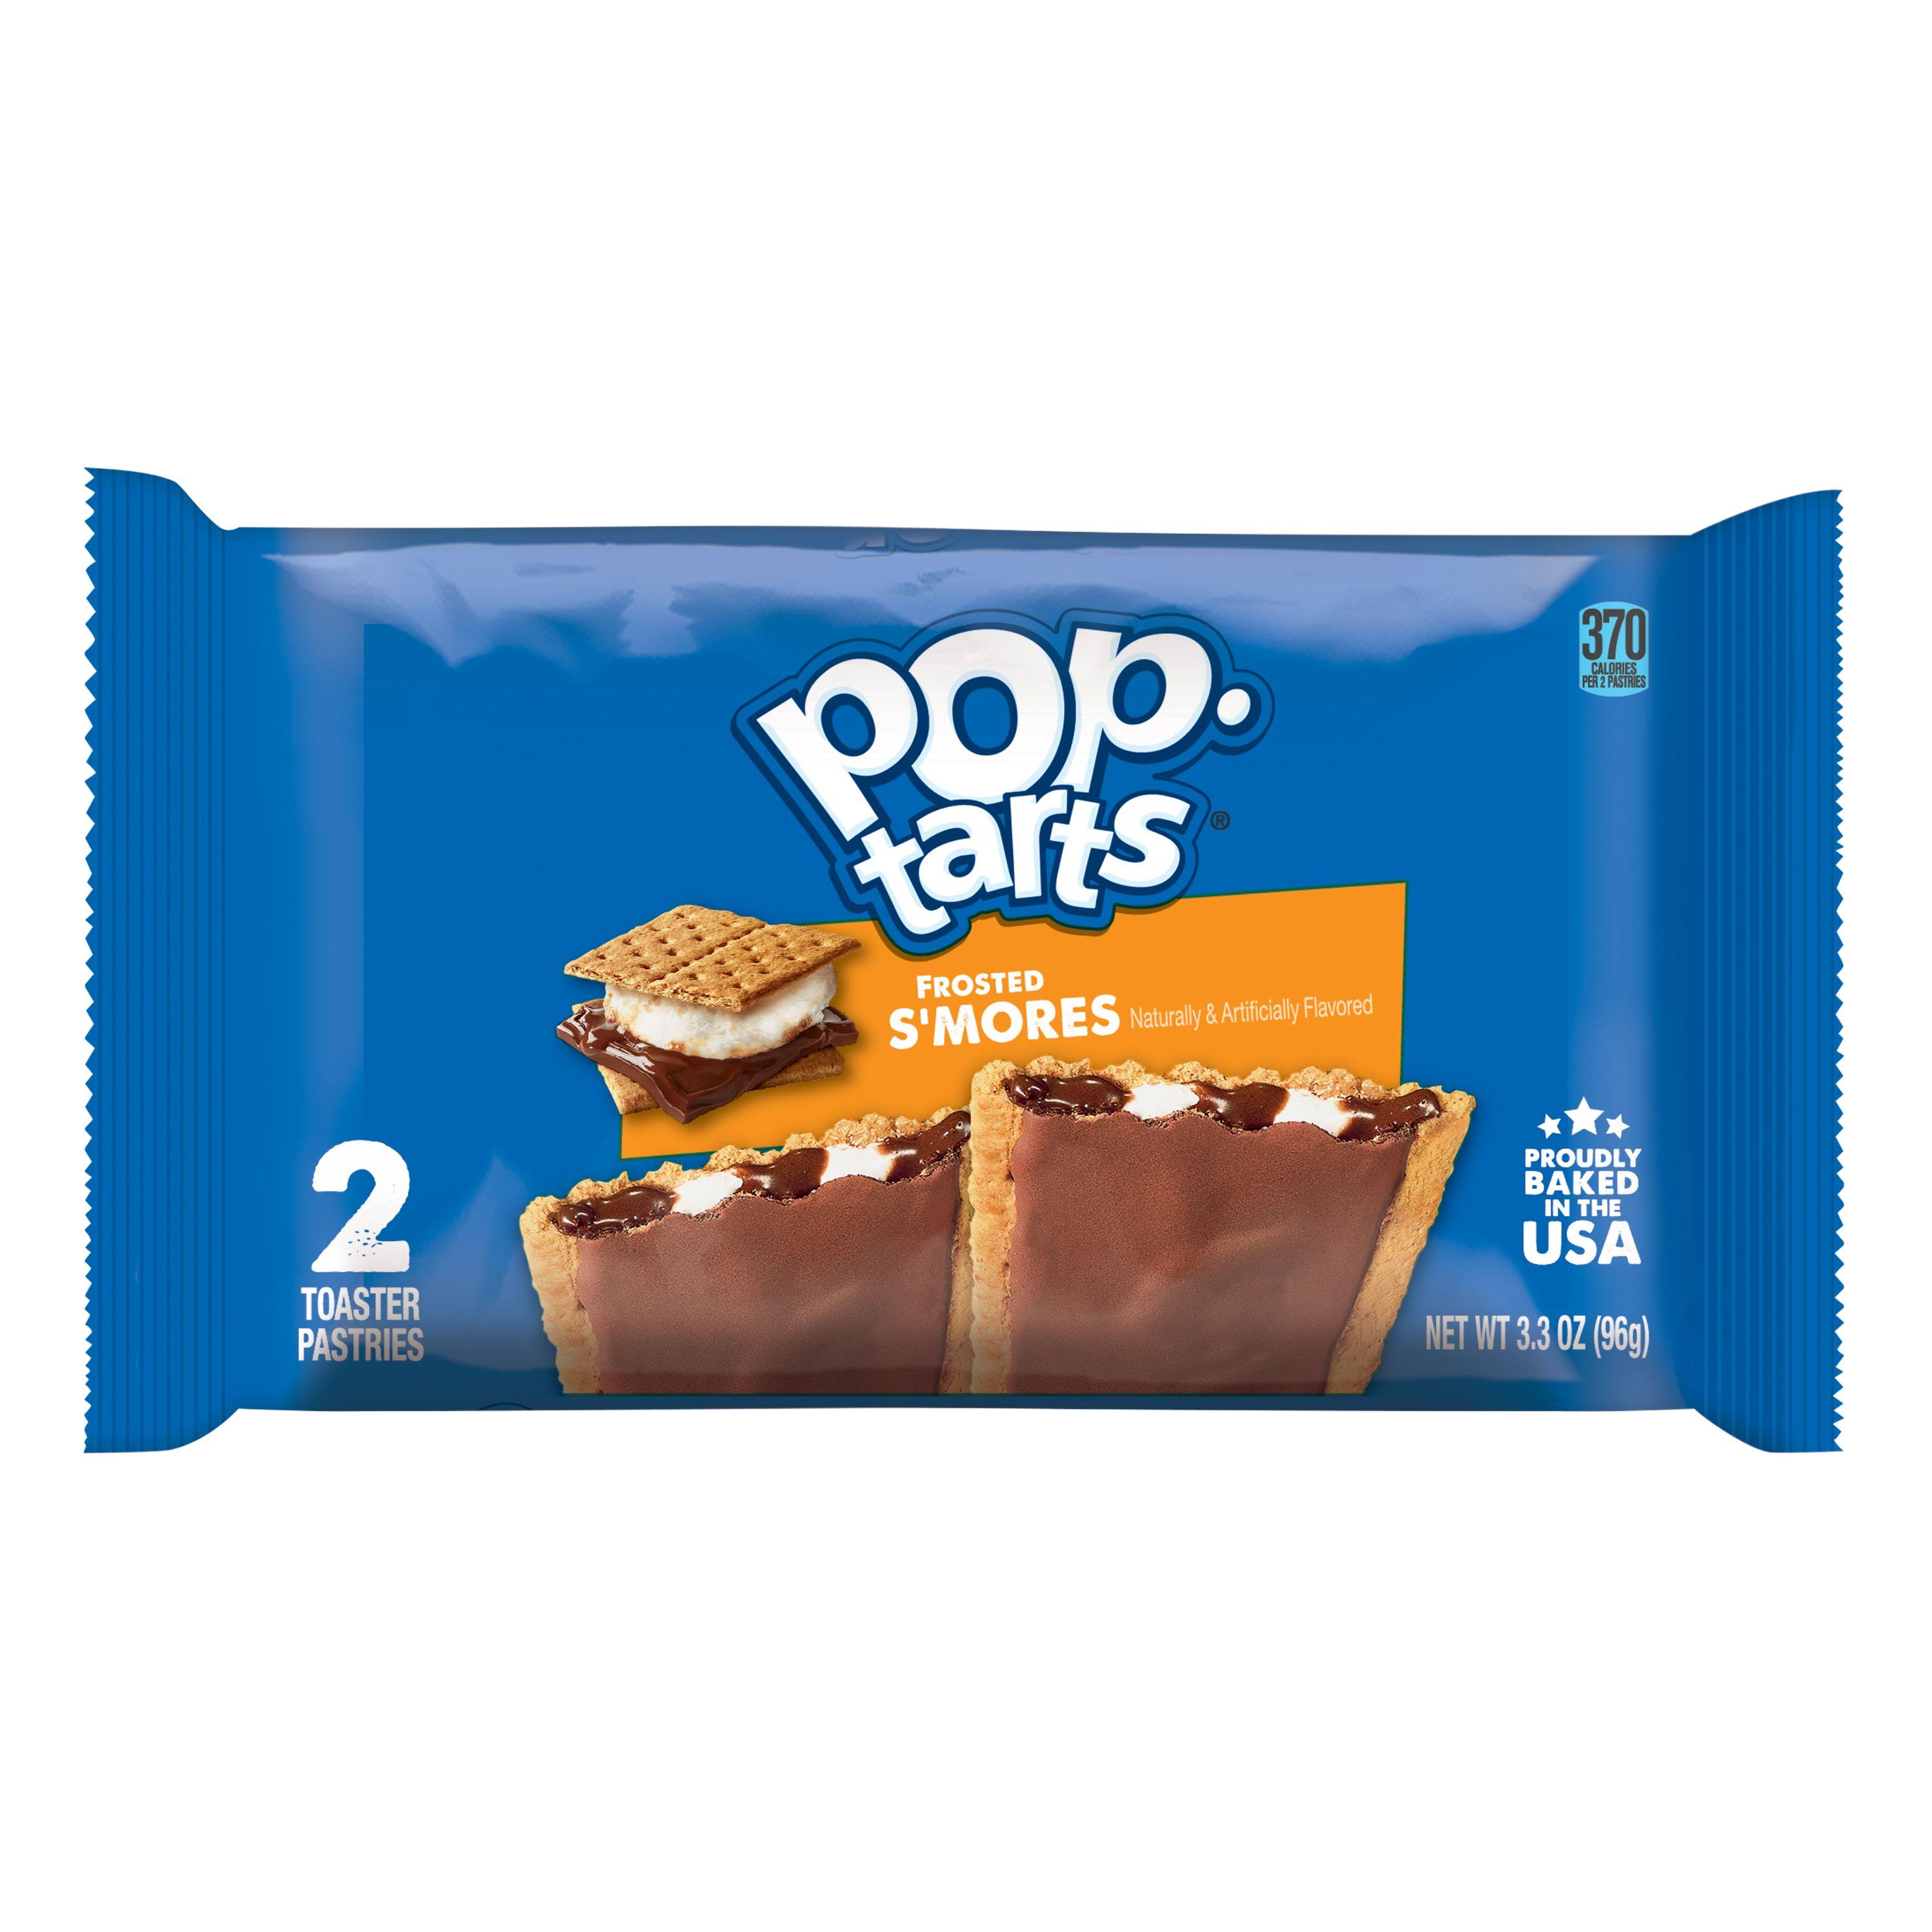 Pop Tarts Toaster Pastries, Frosted S'mores - 2 pastries, 3.67 oz